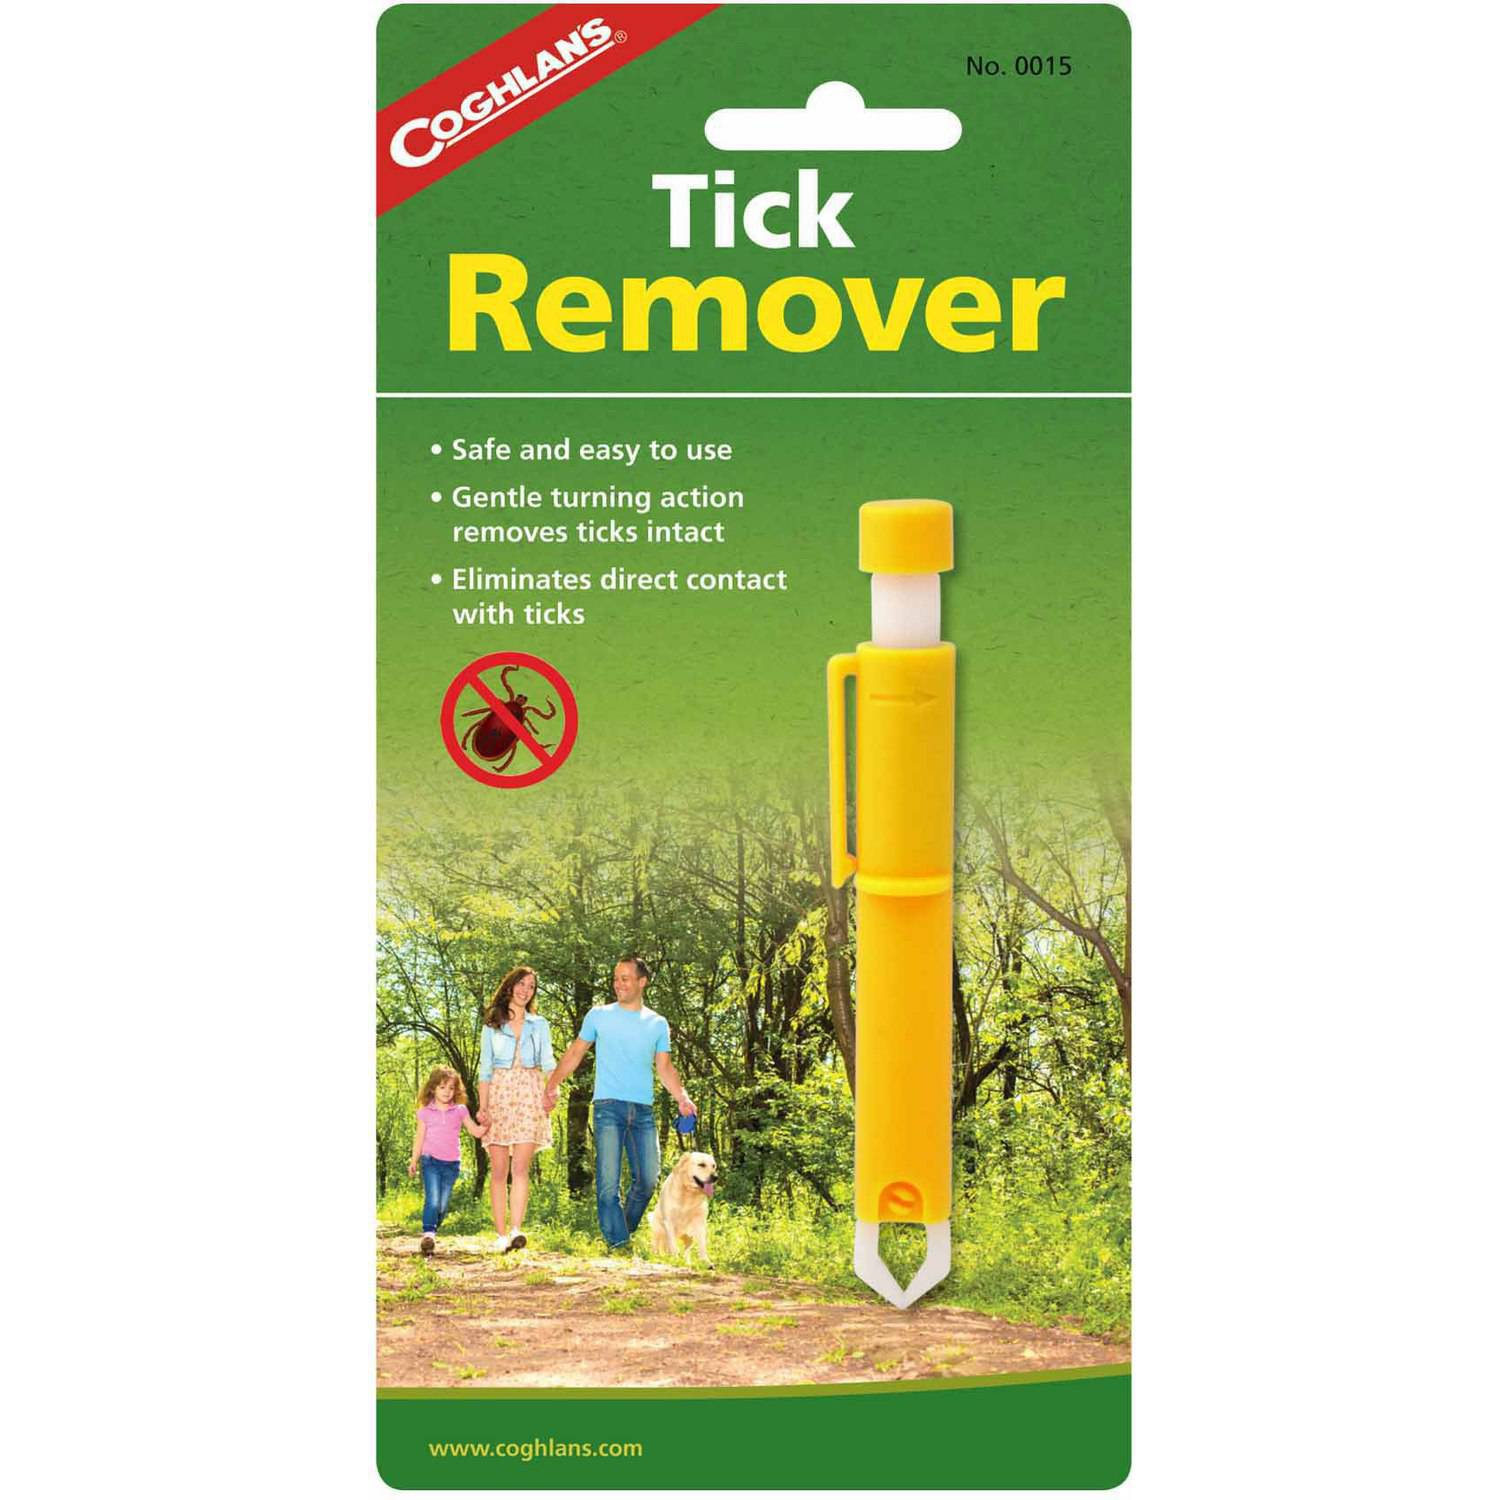 Coghlan's Tick Remover Tool